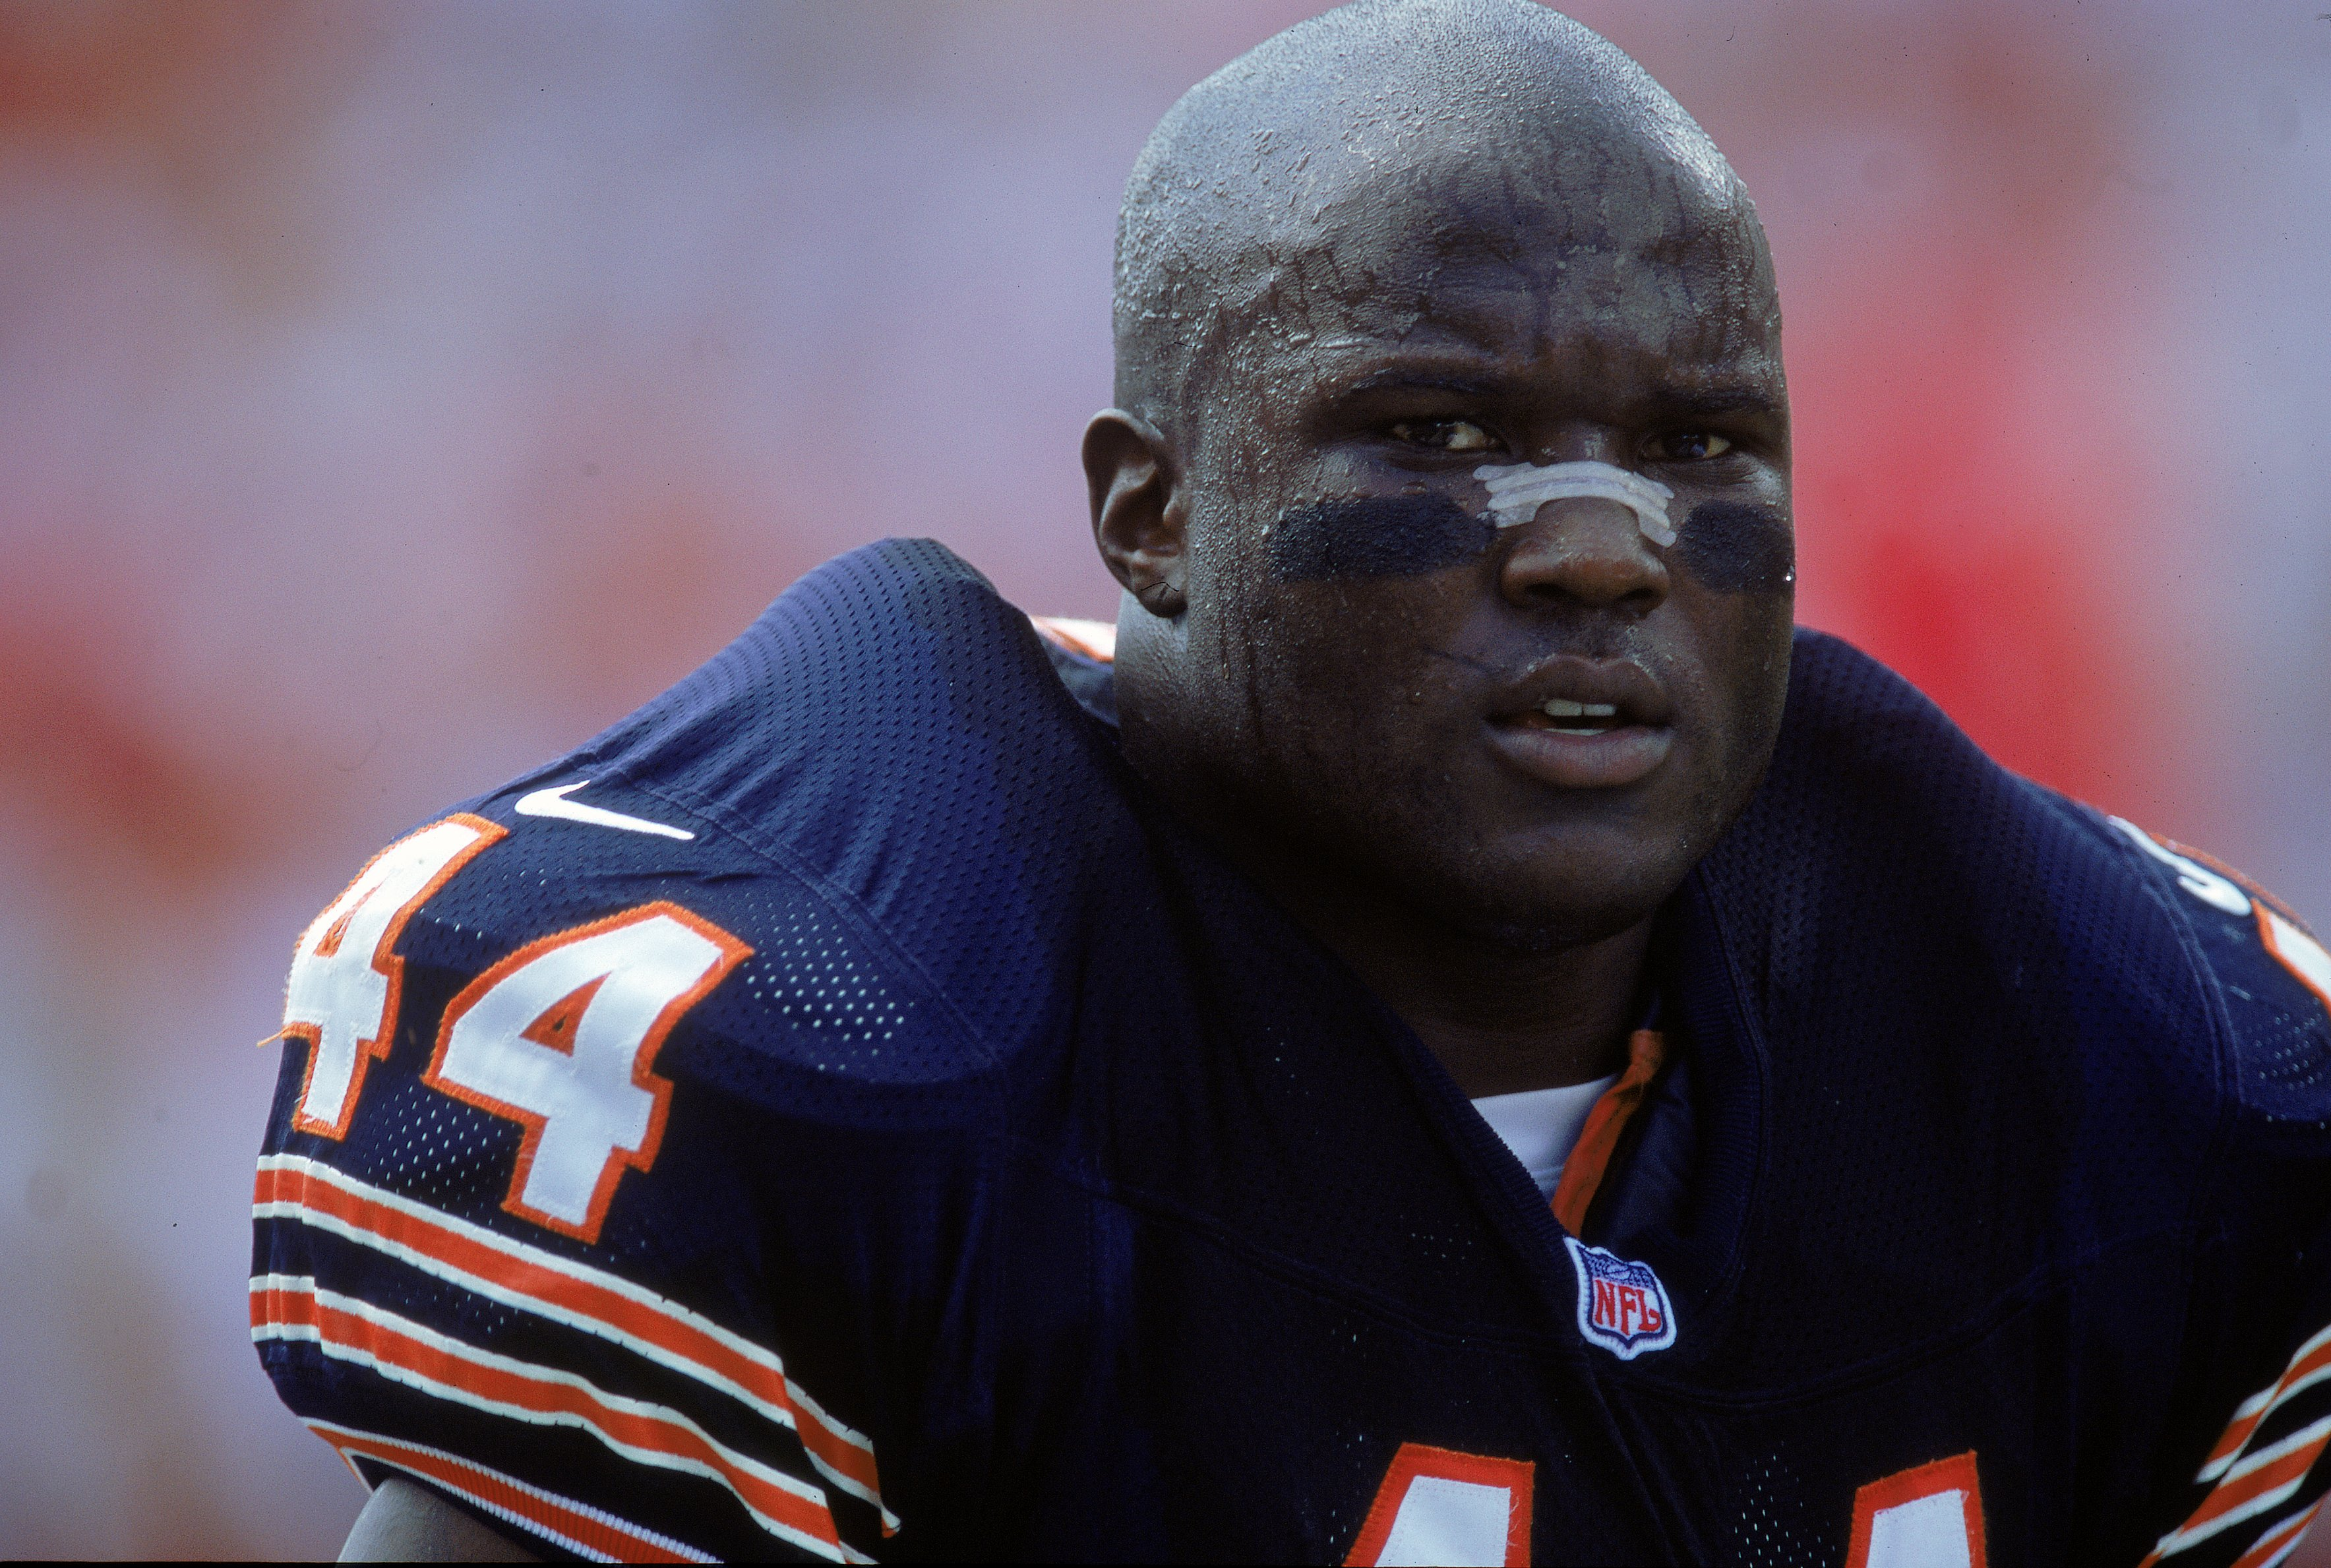 10 Sep 2000:  A close up of Curtis Enis #44 of the Chicago Bears watching the action during the game against the Tampa Bay Buccaneers at the Raymond James Stadium in Tampa Bay, Florida. The Buccaneers defeated the Bears 40-0.Mandatory Credit: Andy Lyons